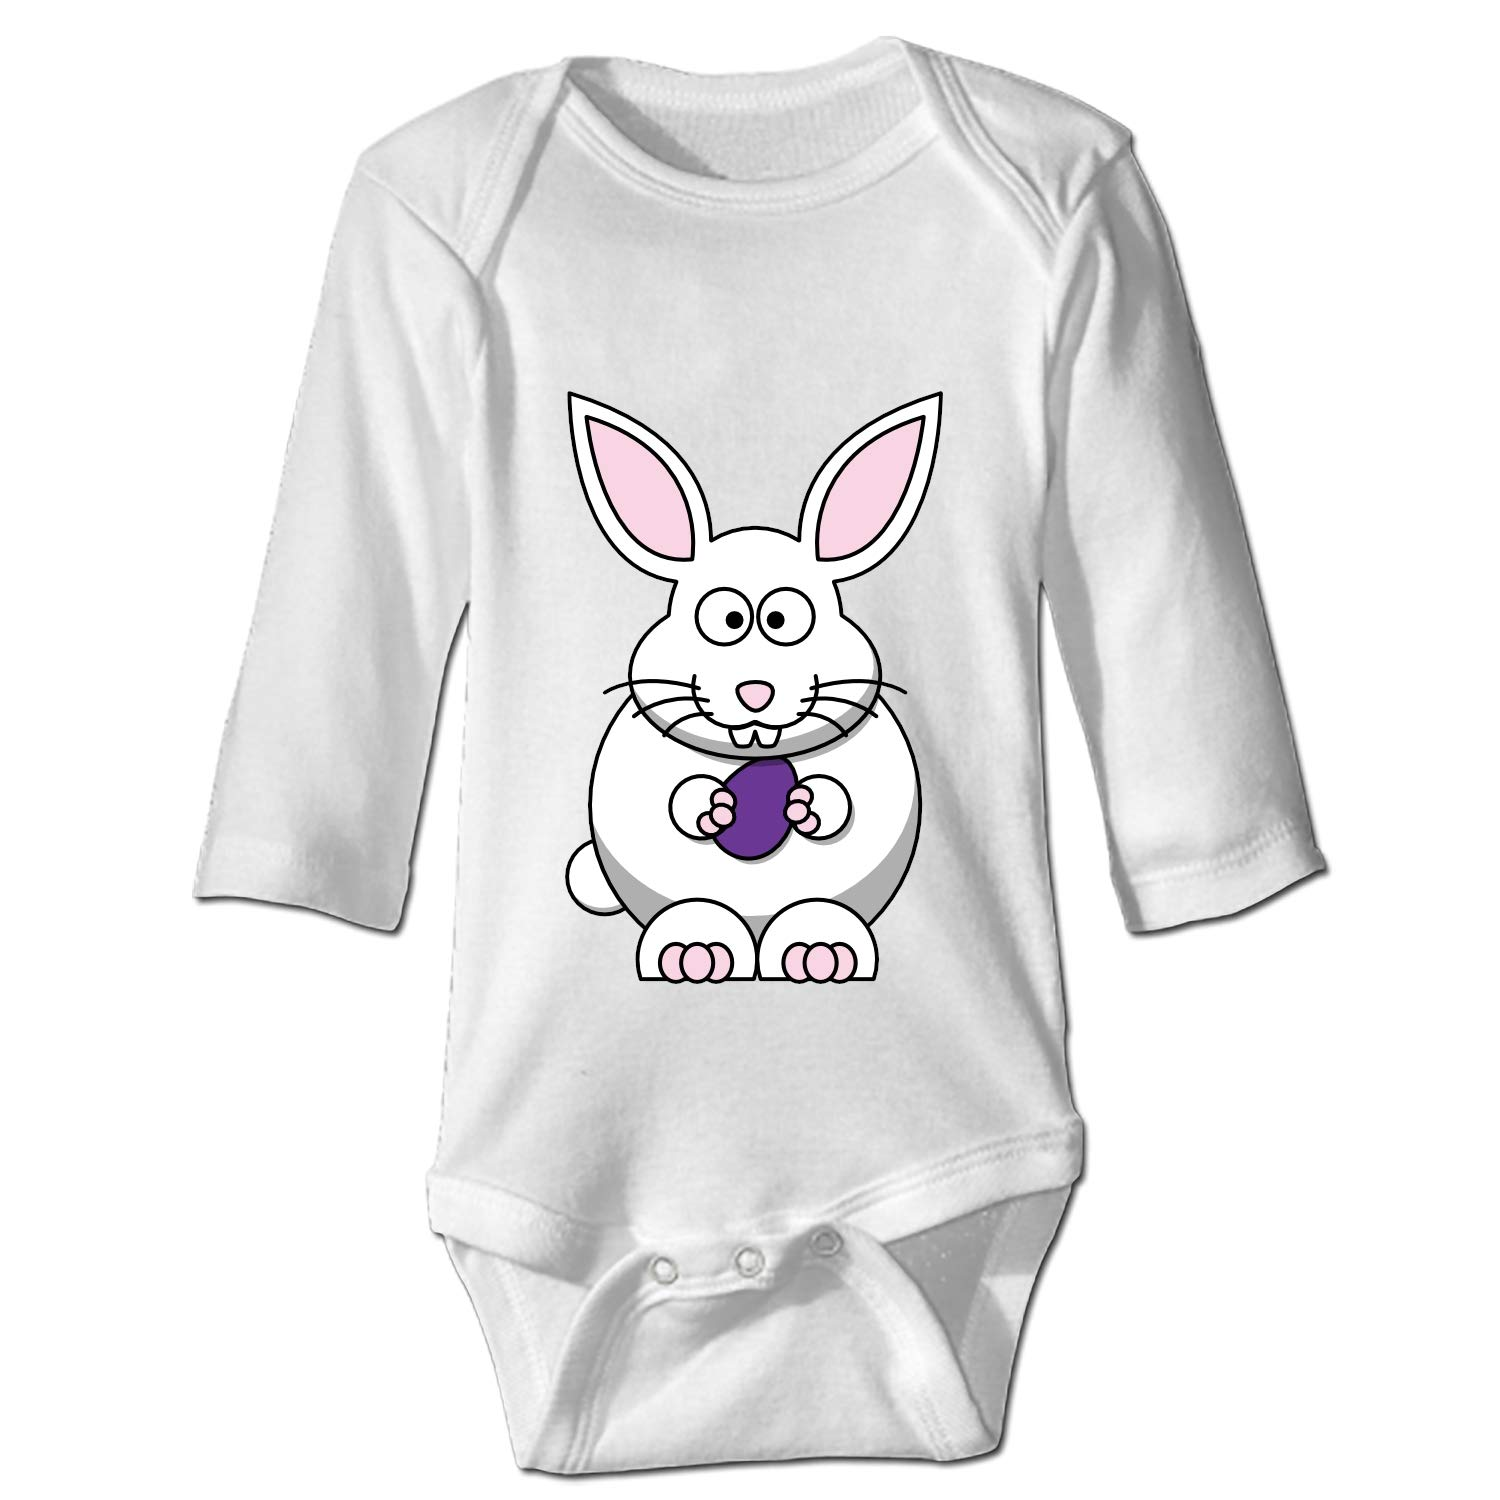 YSKHDBC Baby Clothes Clipart Bunnyta Cool Shirt Bodysuit